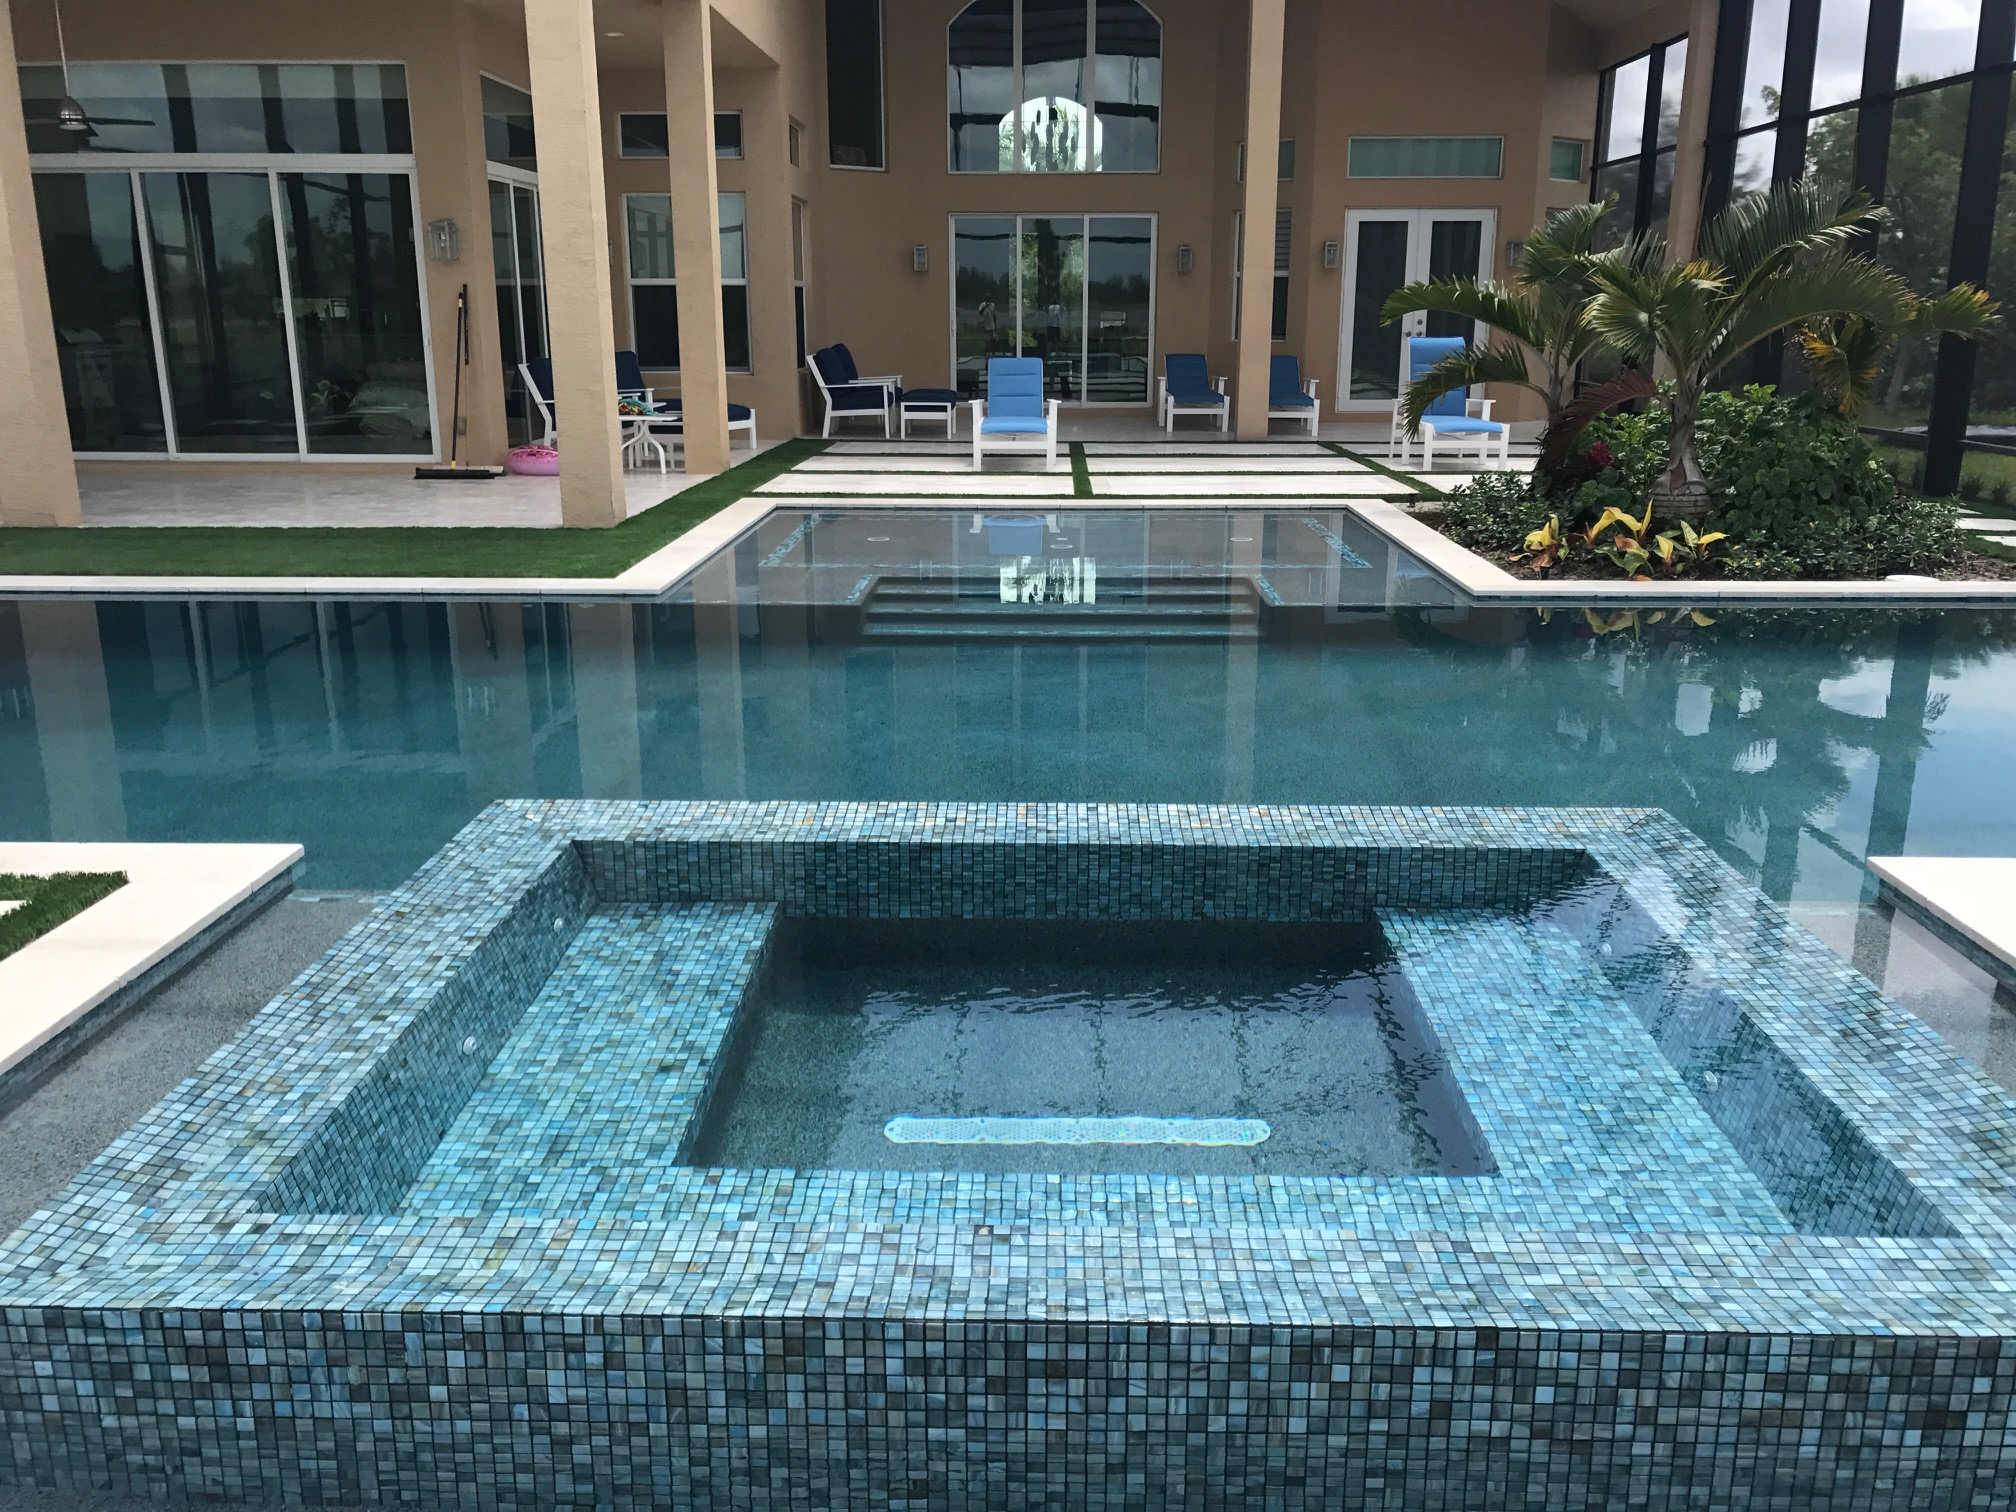 rhr pools of jupiter fl infinity edge spa with blue mosaic tiles